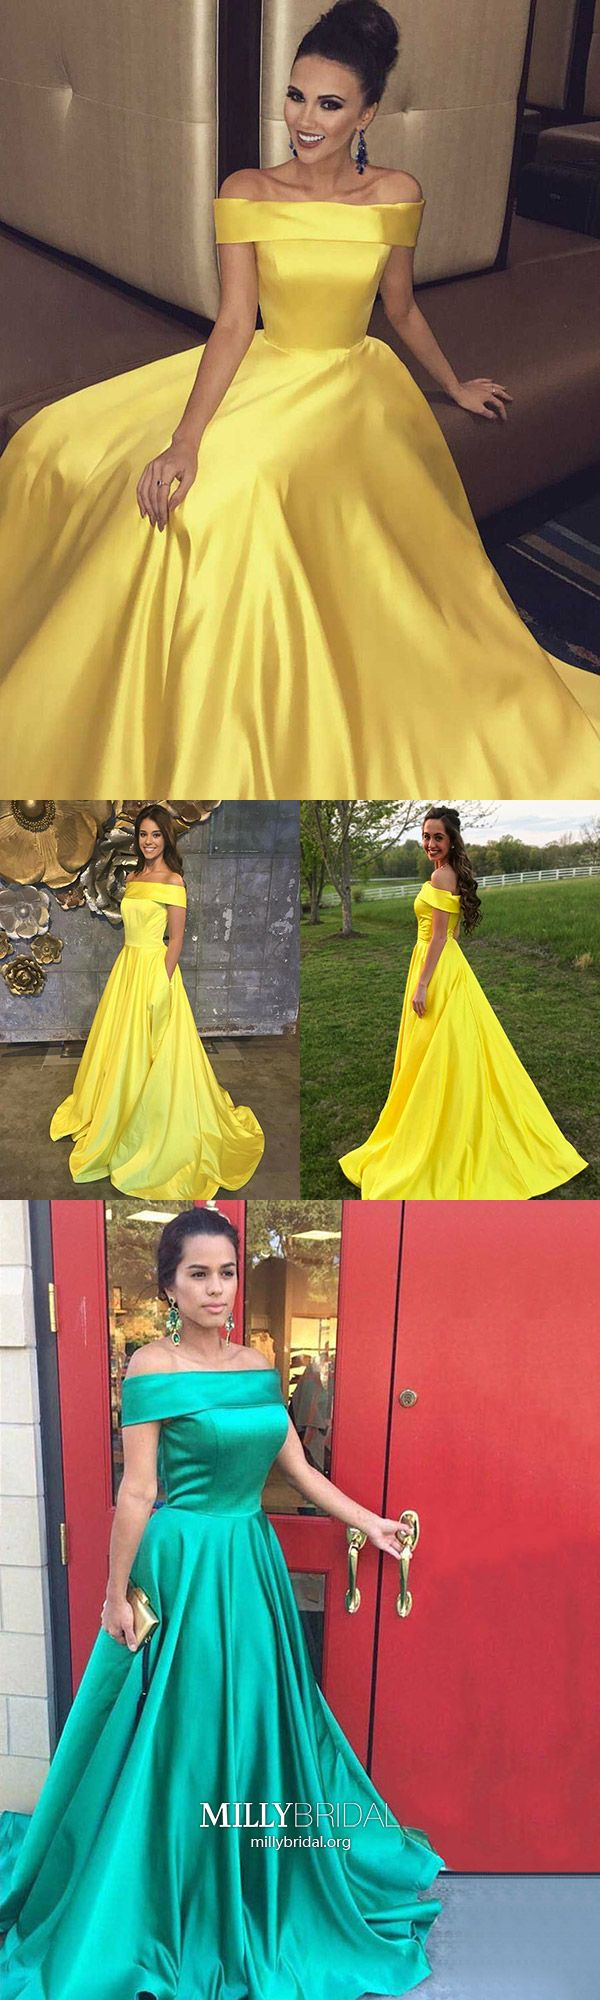 Long prom dresses for teenagersyellow formal evening dresses